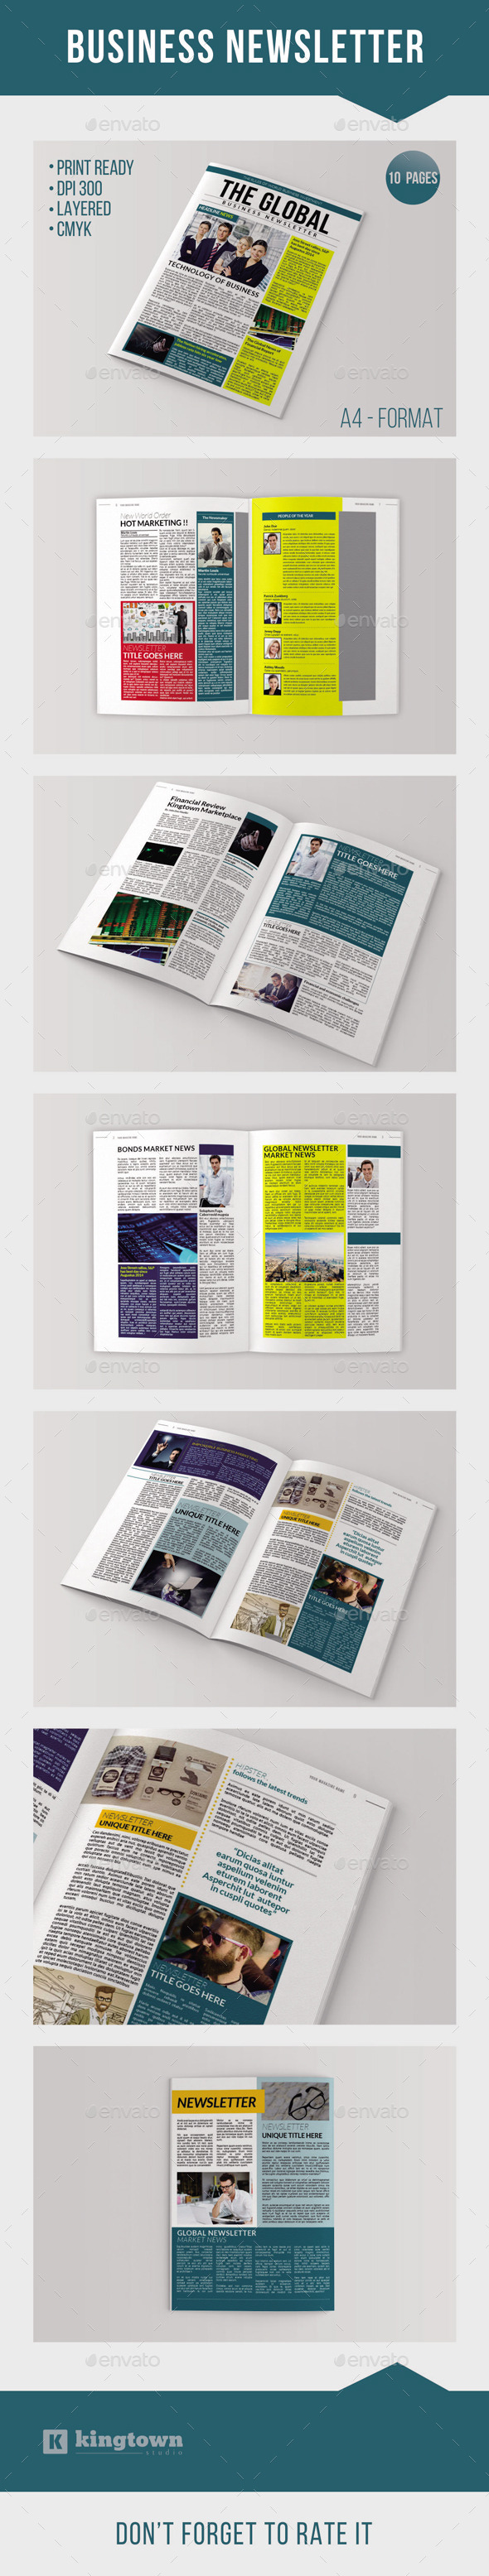 GraphicRiver Business Newsletter Vol 2 9195492